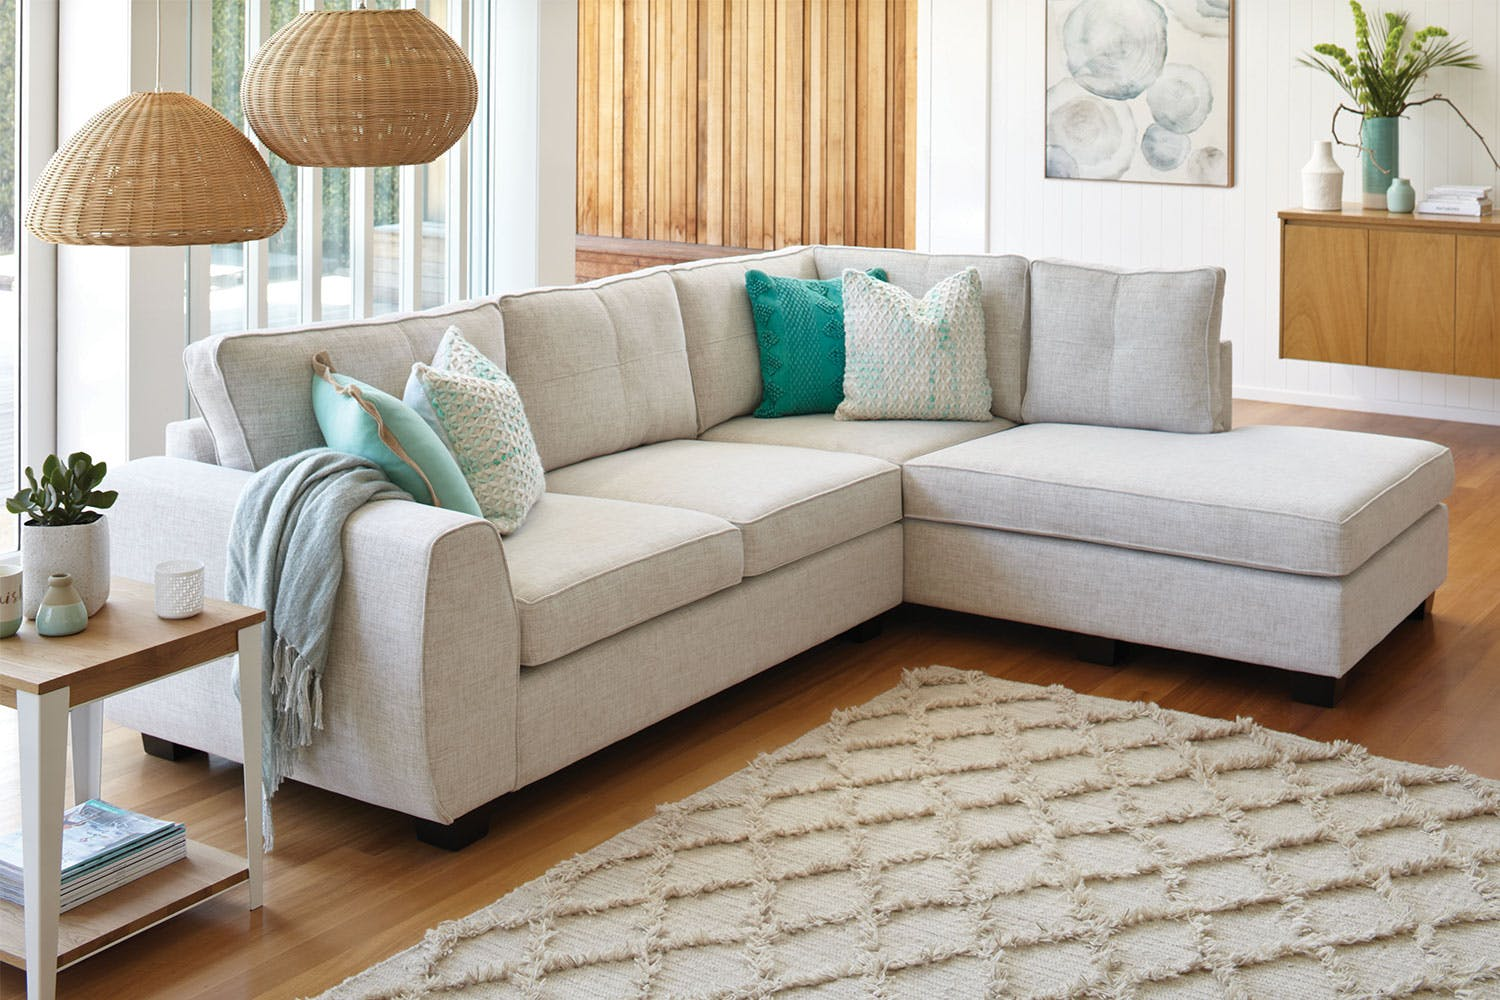 Albany 4 seater fabric sofa with chaise by white rose for 4 seater sofa with chaise